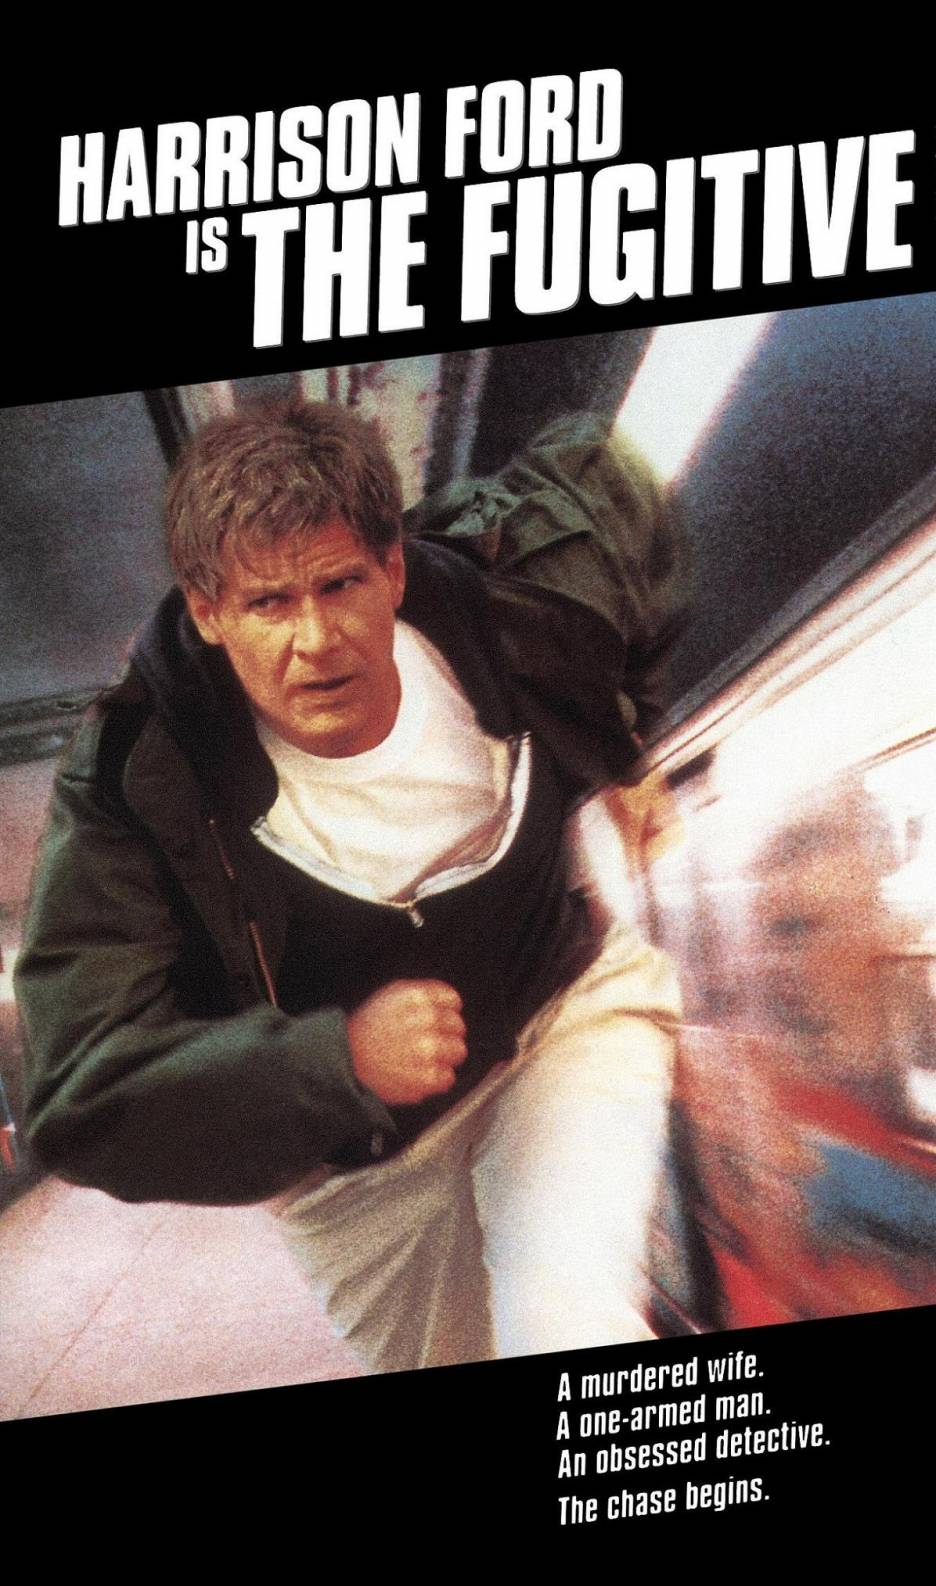 Bonus: Kevin Heaven and the One-Armed Man - Listener mail returns! We dig into 1993's The Fugitive, one of the all-time greats, and we cover everything from possible plot holes to weird Dutch accents to the perfection that is Tommy Lee Jones. (If you haven't seen the movie, what have you been doing with your life?) Do a Peter Pan right here off this dam and listen now!Listen and subscribe here.